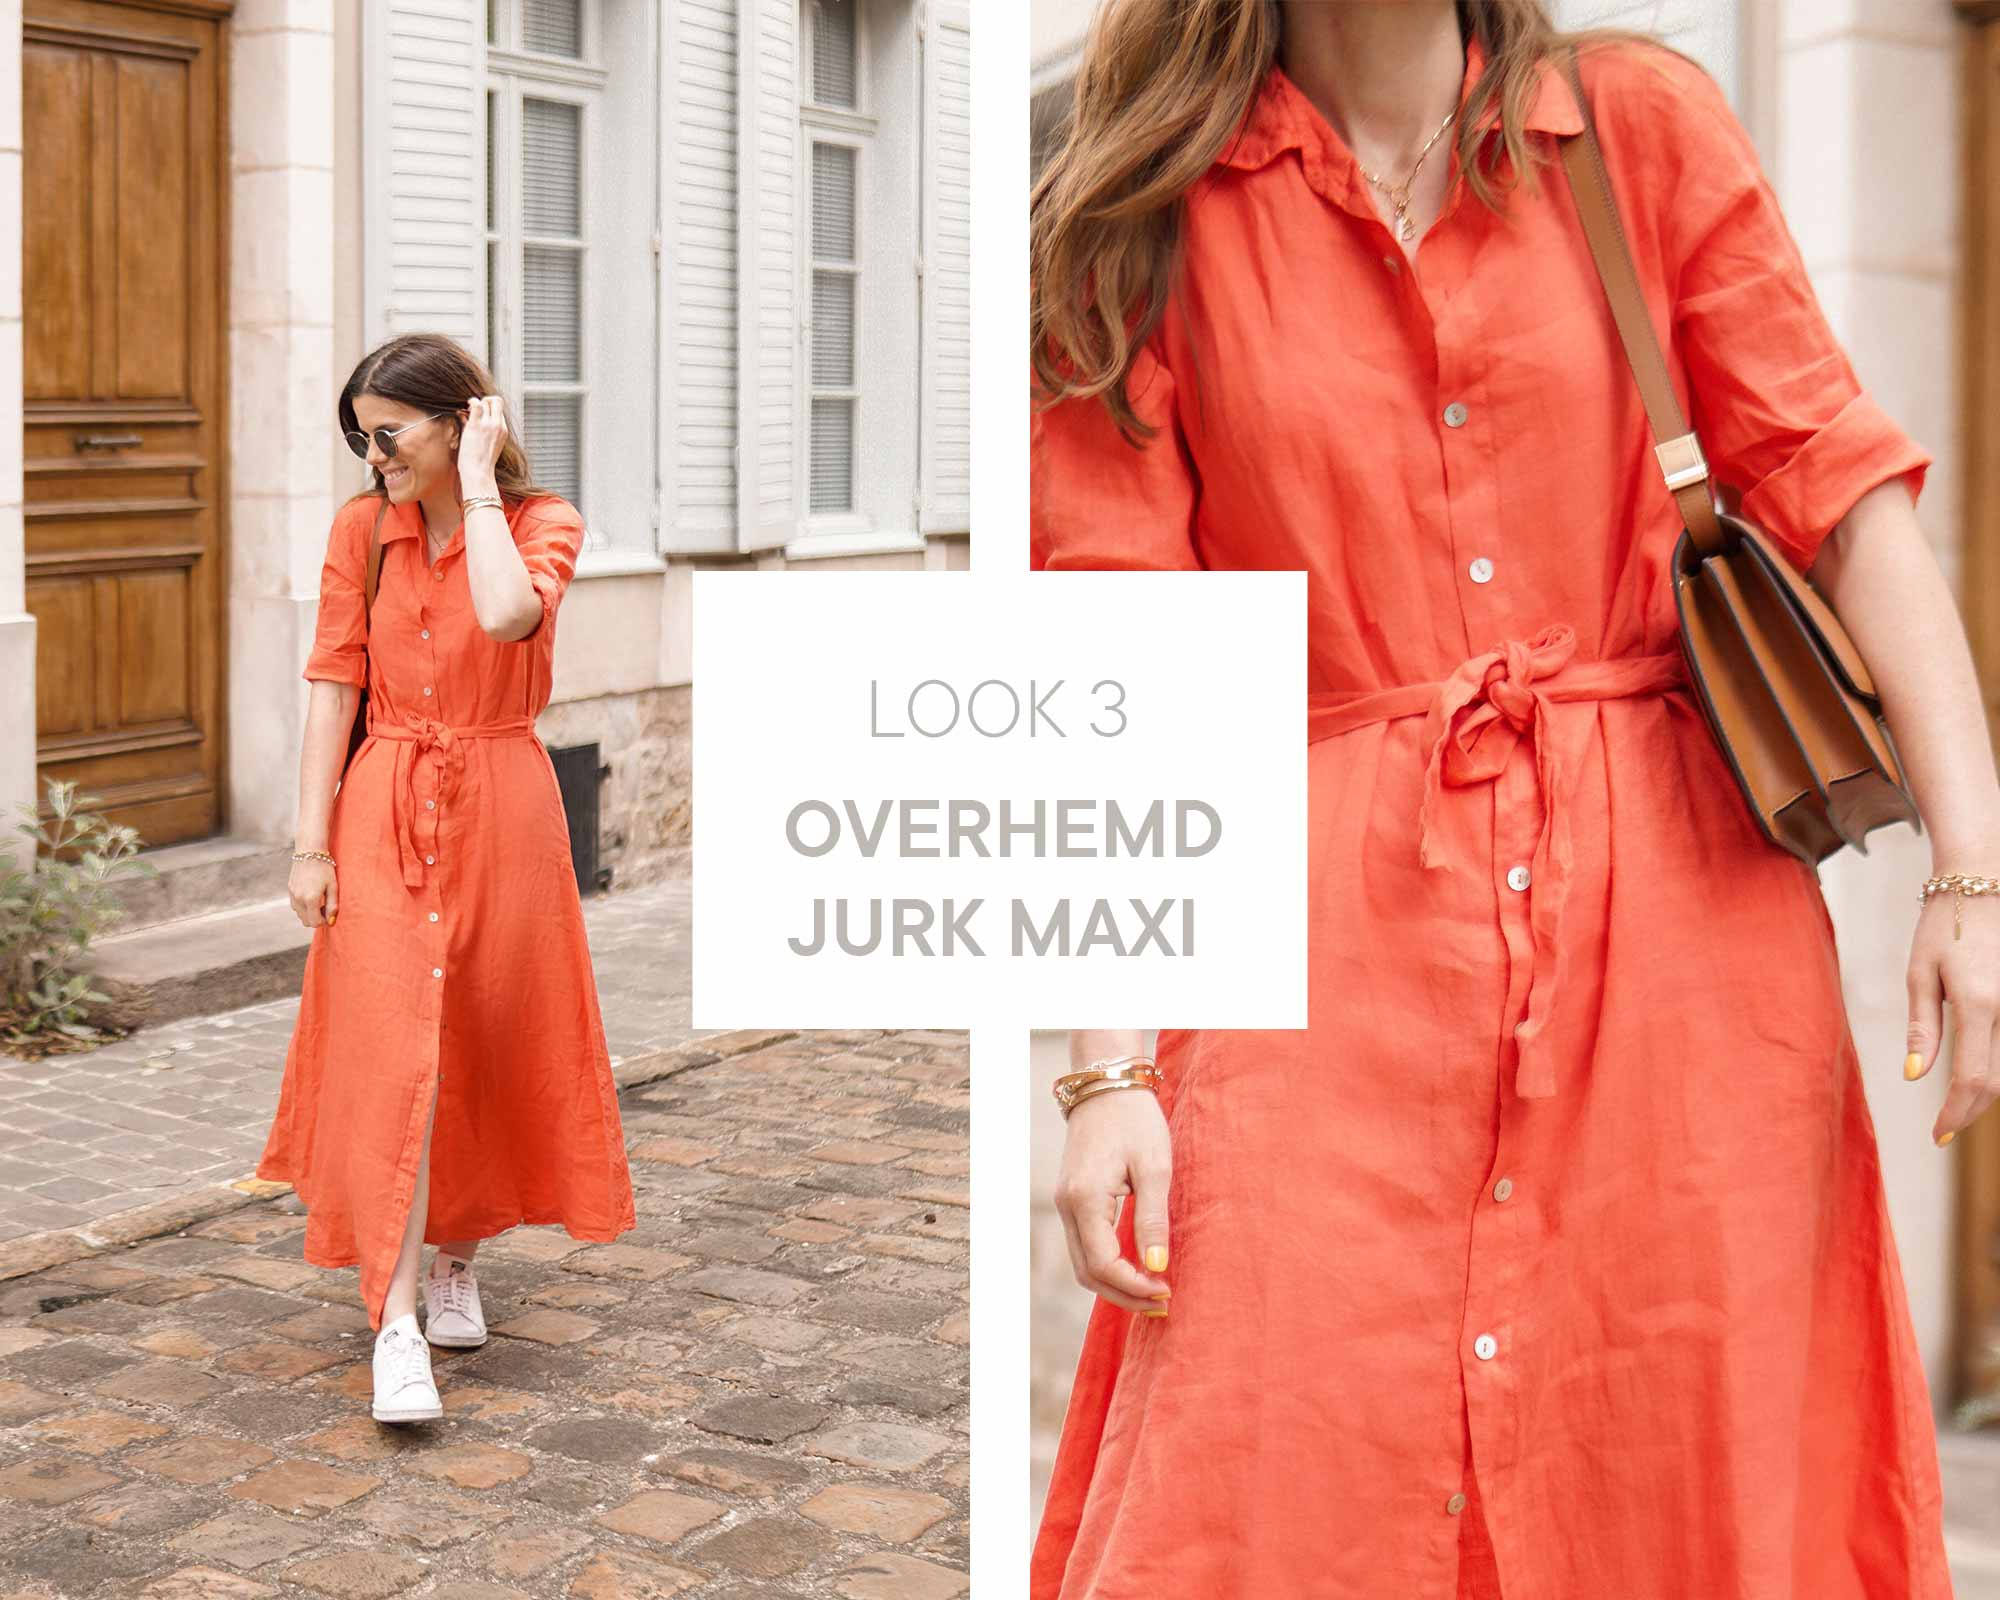 Alexia wearing a coral linen maxi dress with retro sunglasses in the streets of paris.